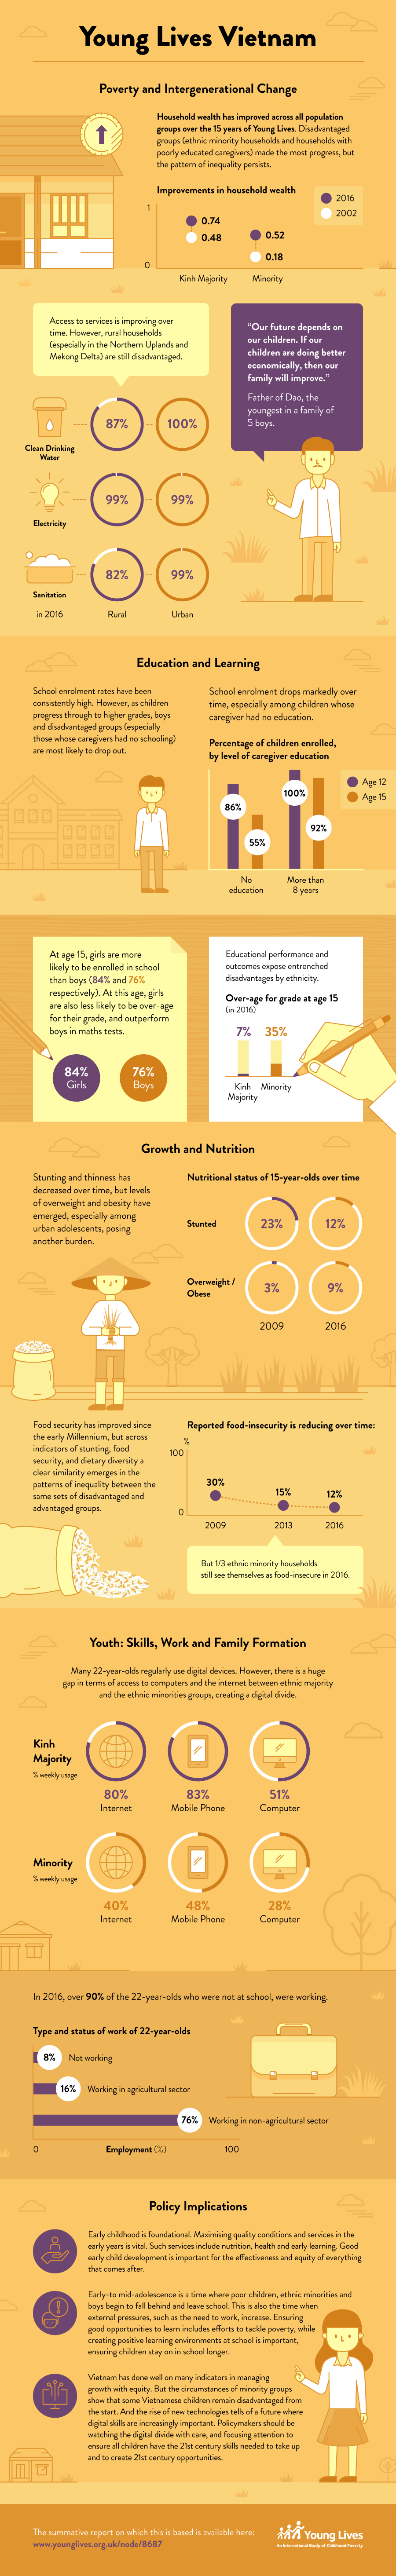 Young Lives Vietnam infographic